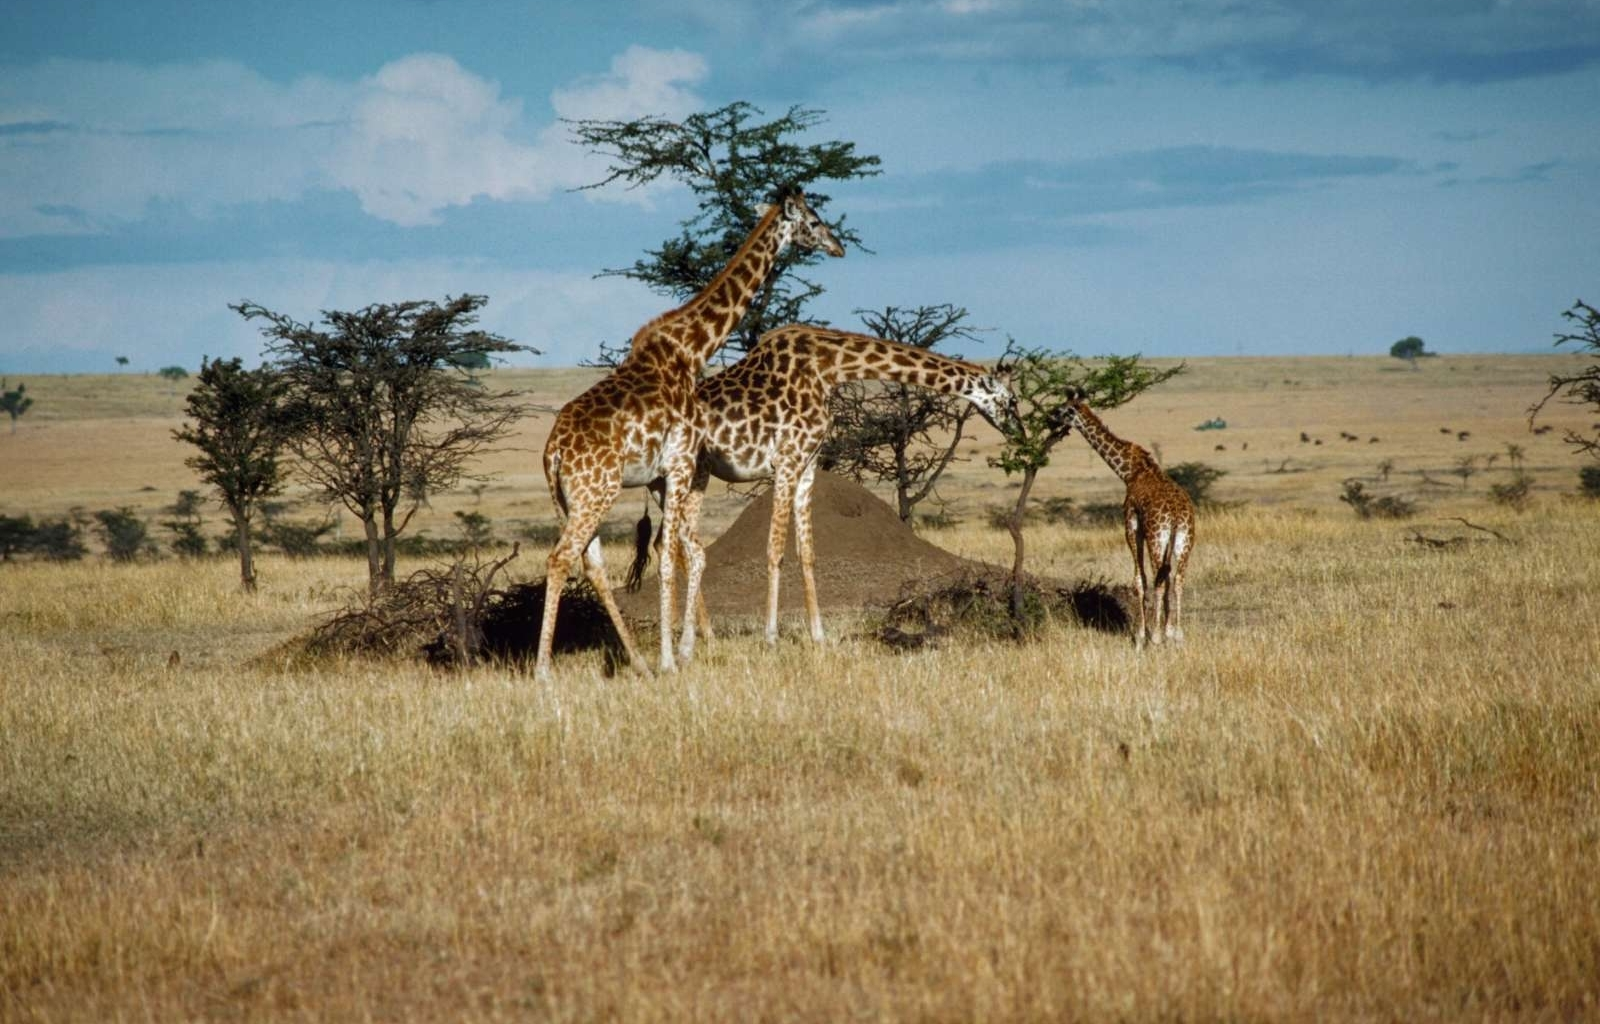 46220 download wallpaper Animals, Landscape, Giraffes screensavers and pictures for free